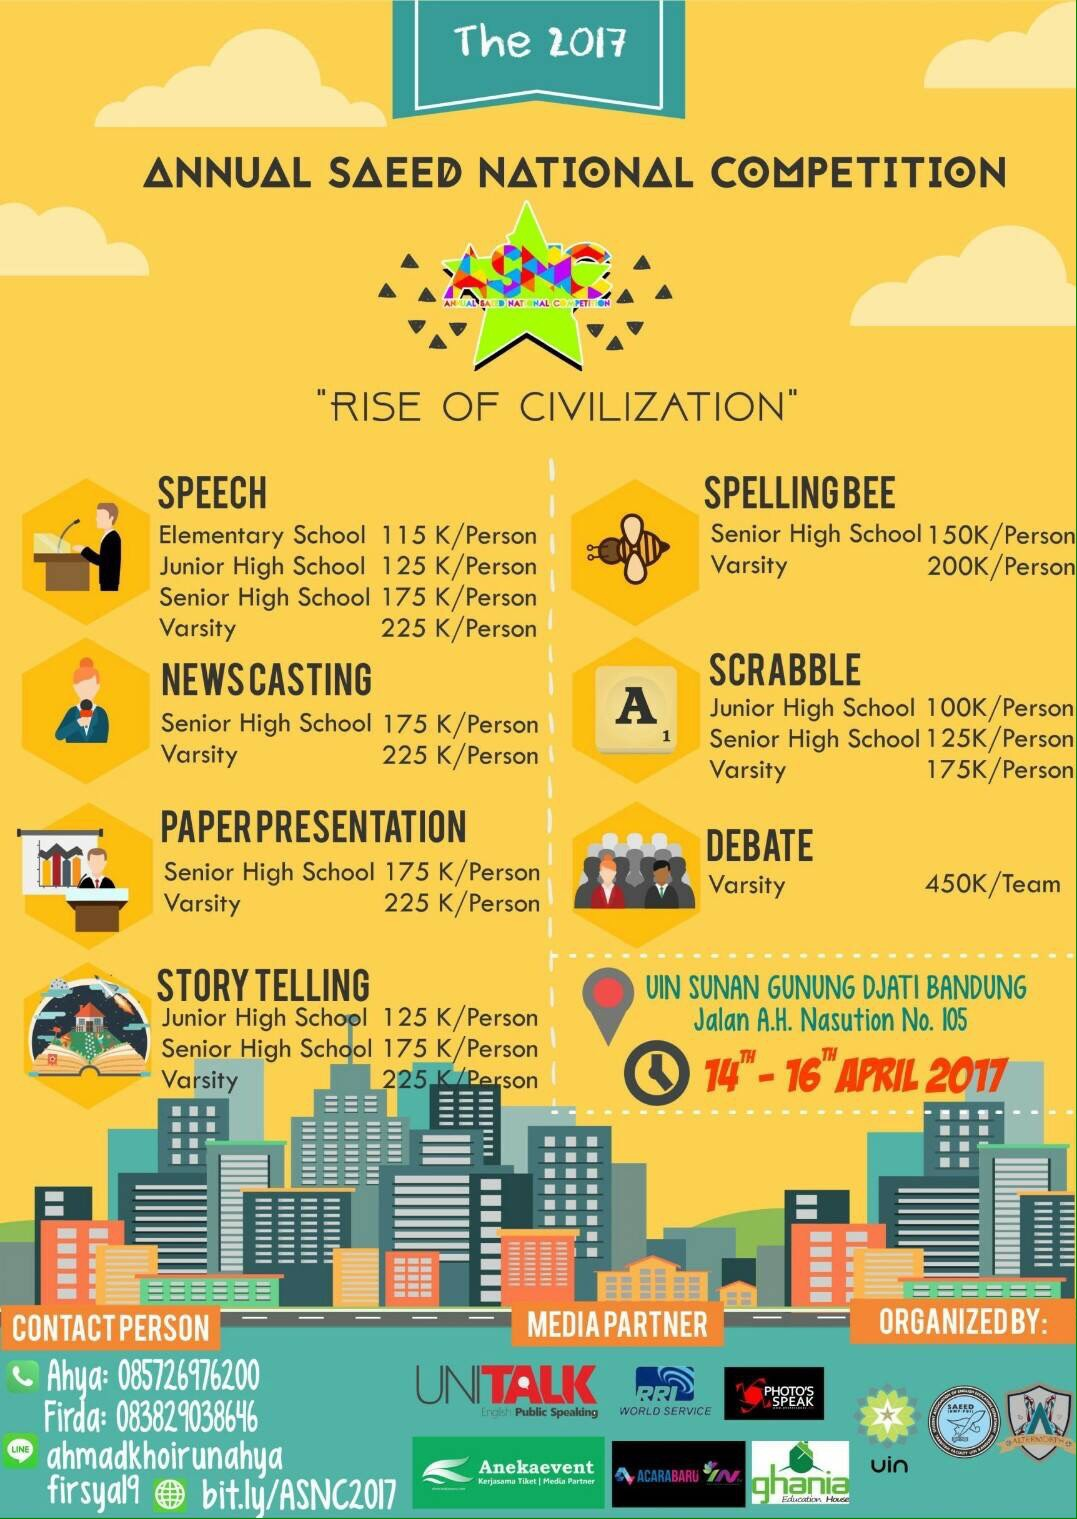 ASNC (Annual SAEED National Competition) - UIN SGD Bandung, 14 - 16 April 2017